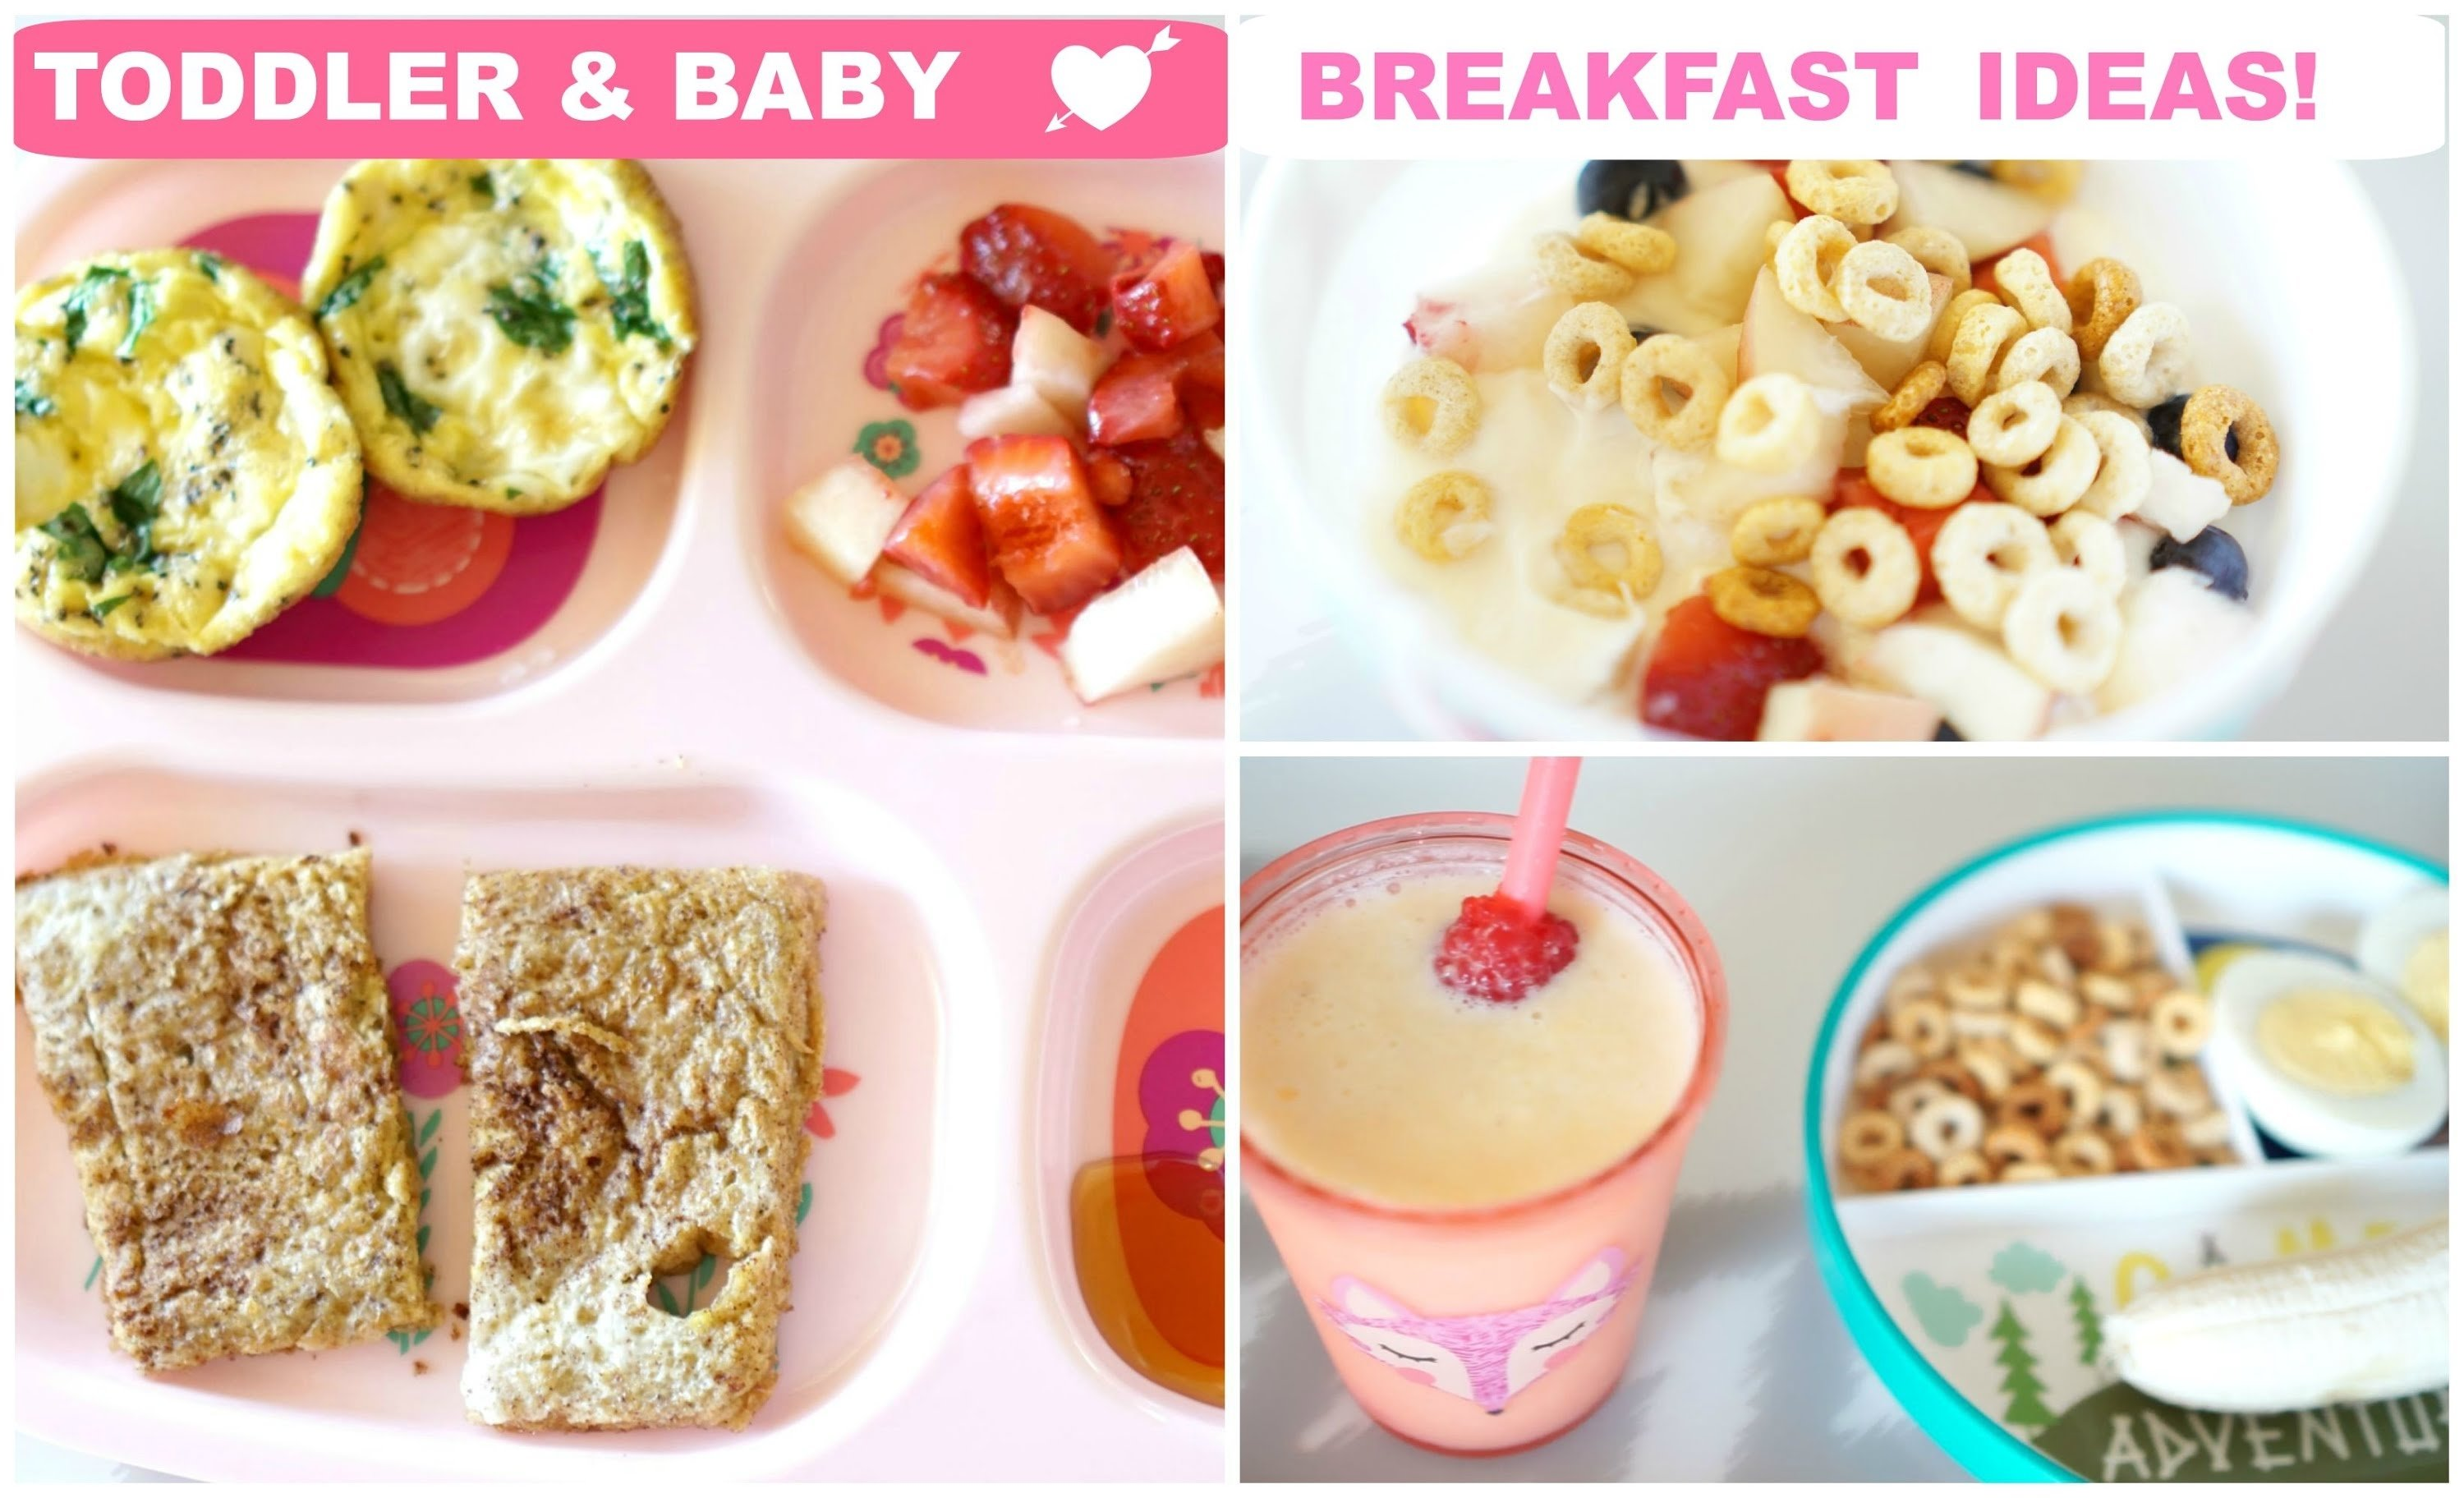 10 Fashionable Quick Breakfast Ideas For Kids breakfast ideas for toddler baby youtube 3